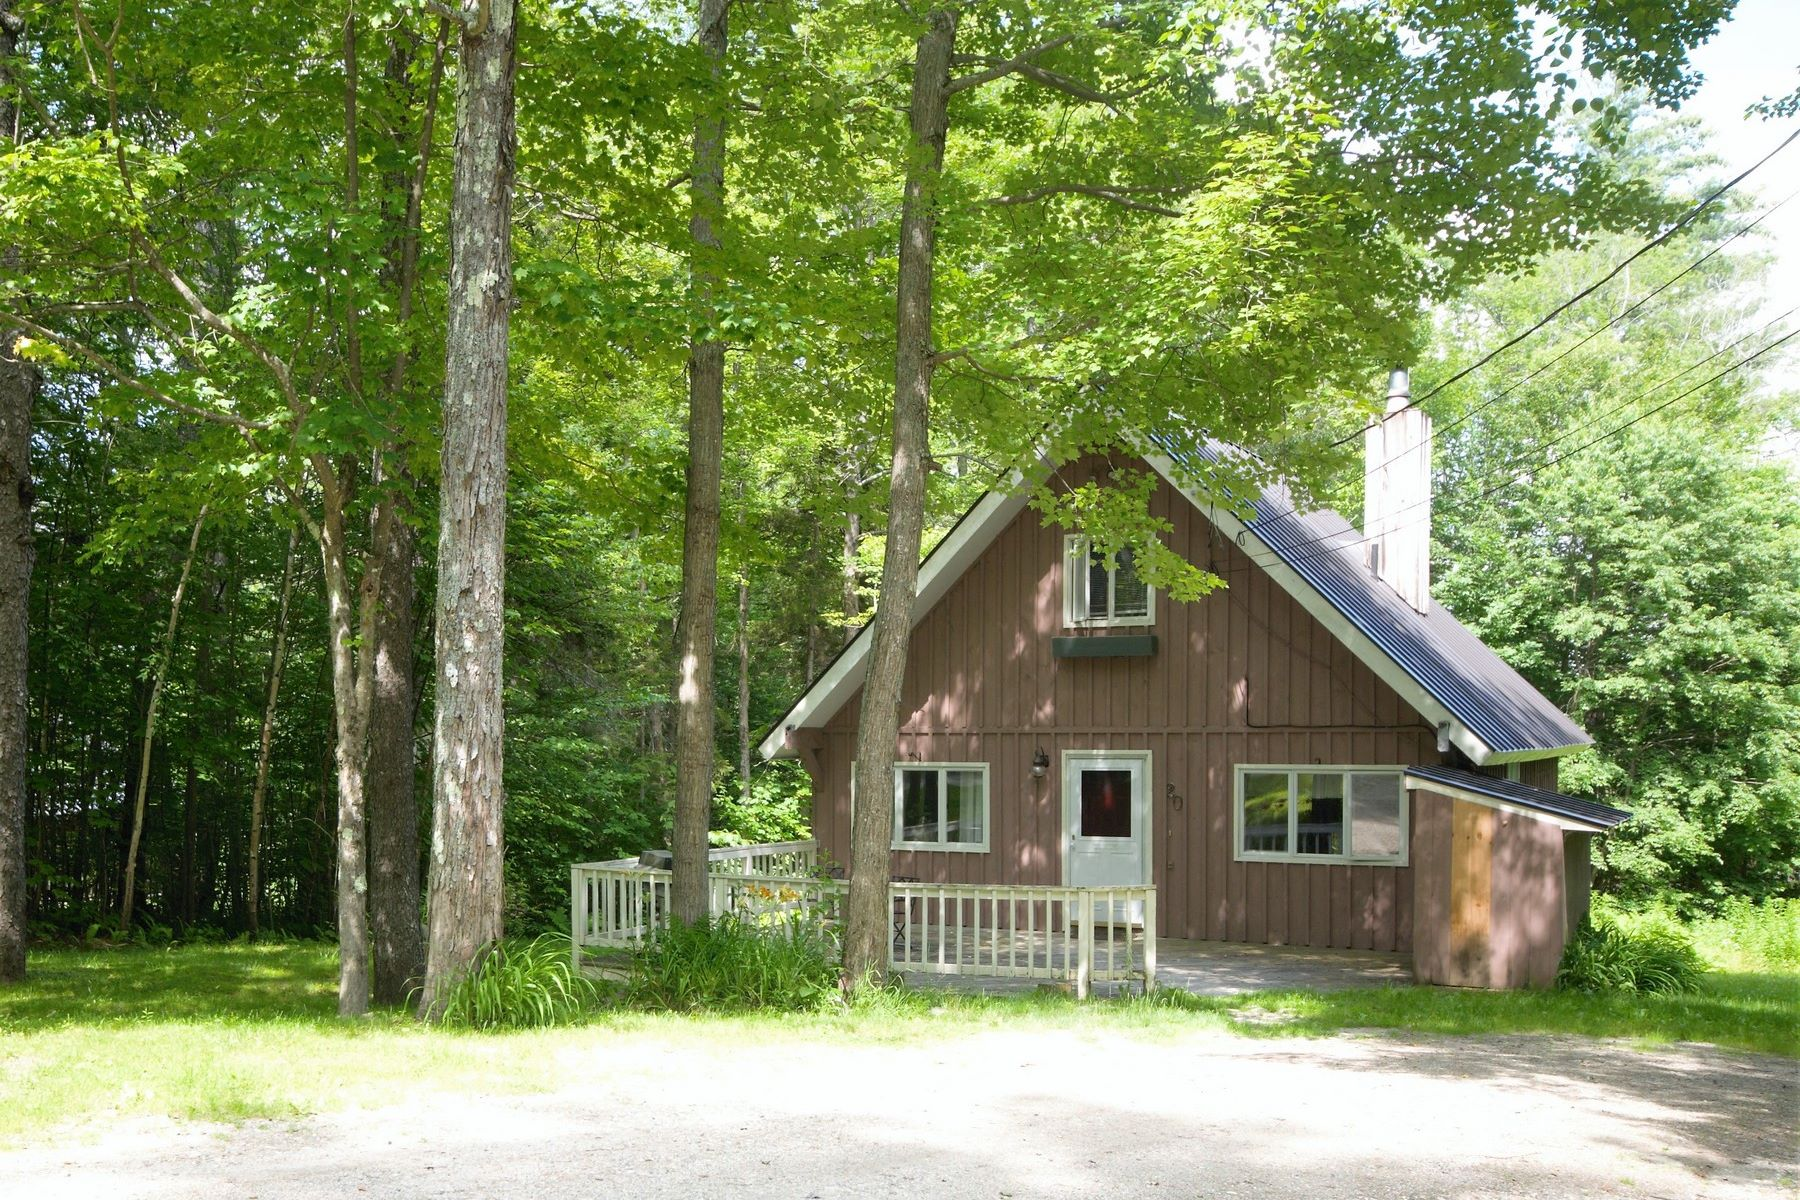 Single Family Home for Sale at 20 Golden Triangle, Winhall Winhall, Vermont, 05340 United States